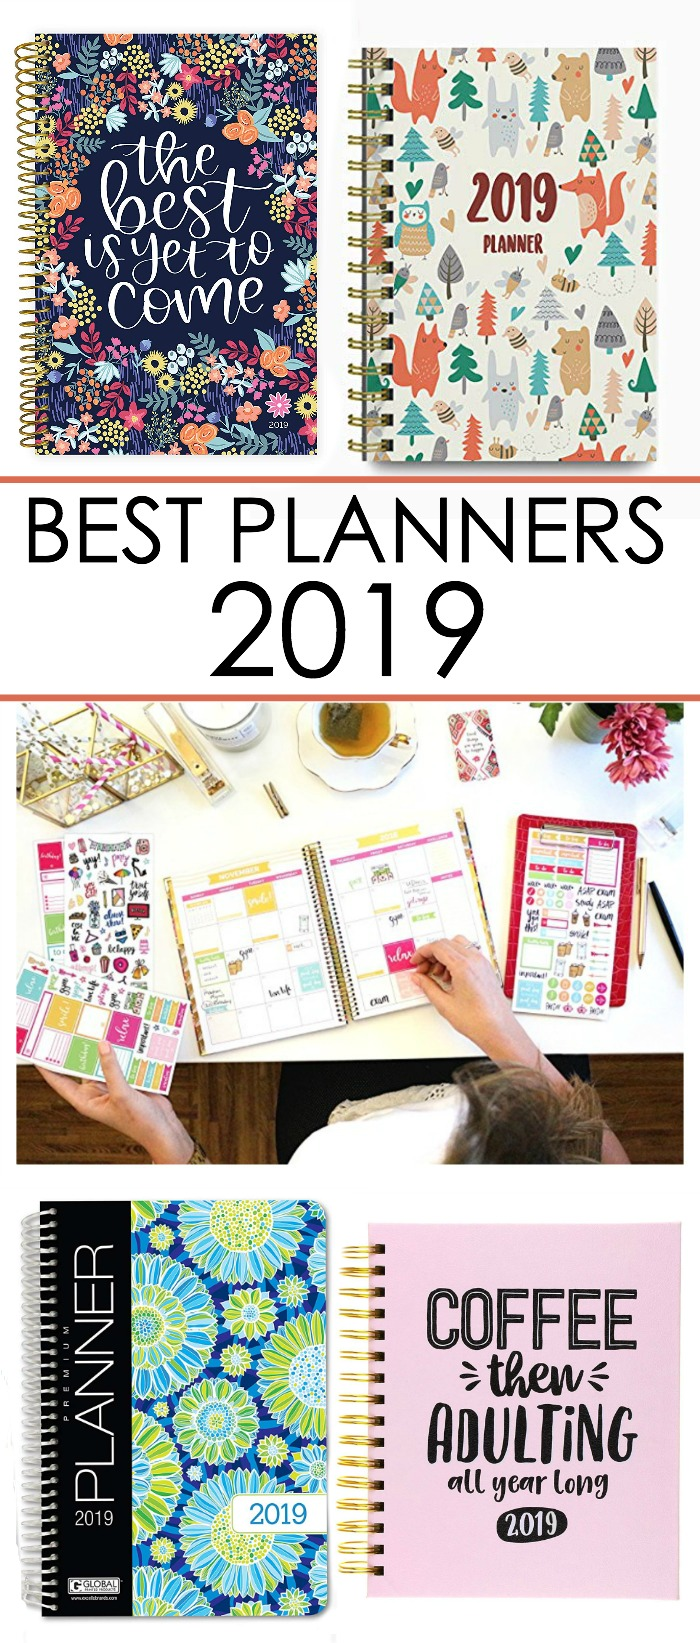 Best Planners And Organizers 2019 Best Planners 2019 to Get You Organized!   Written Reality